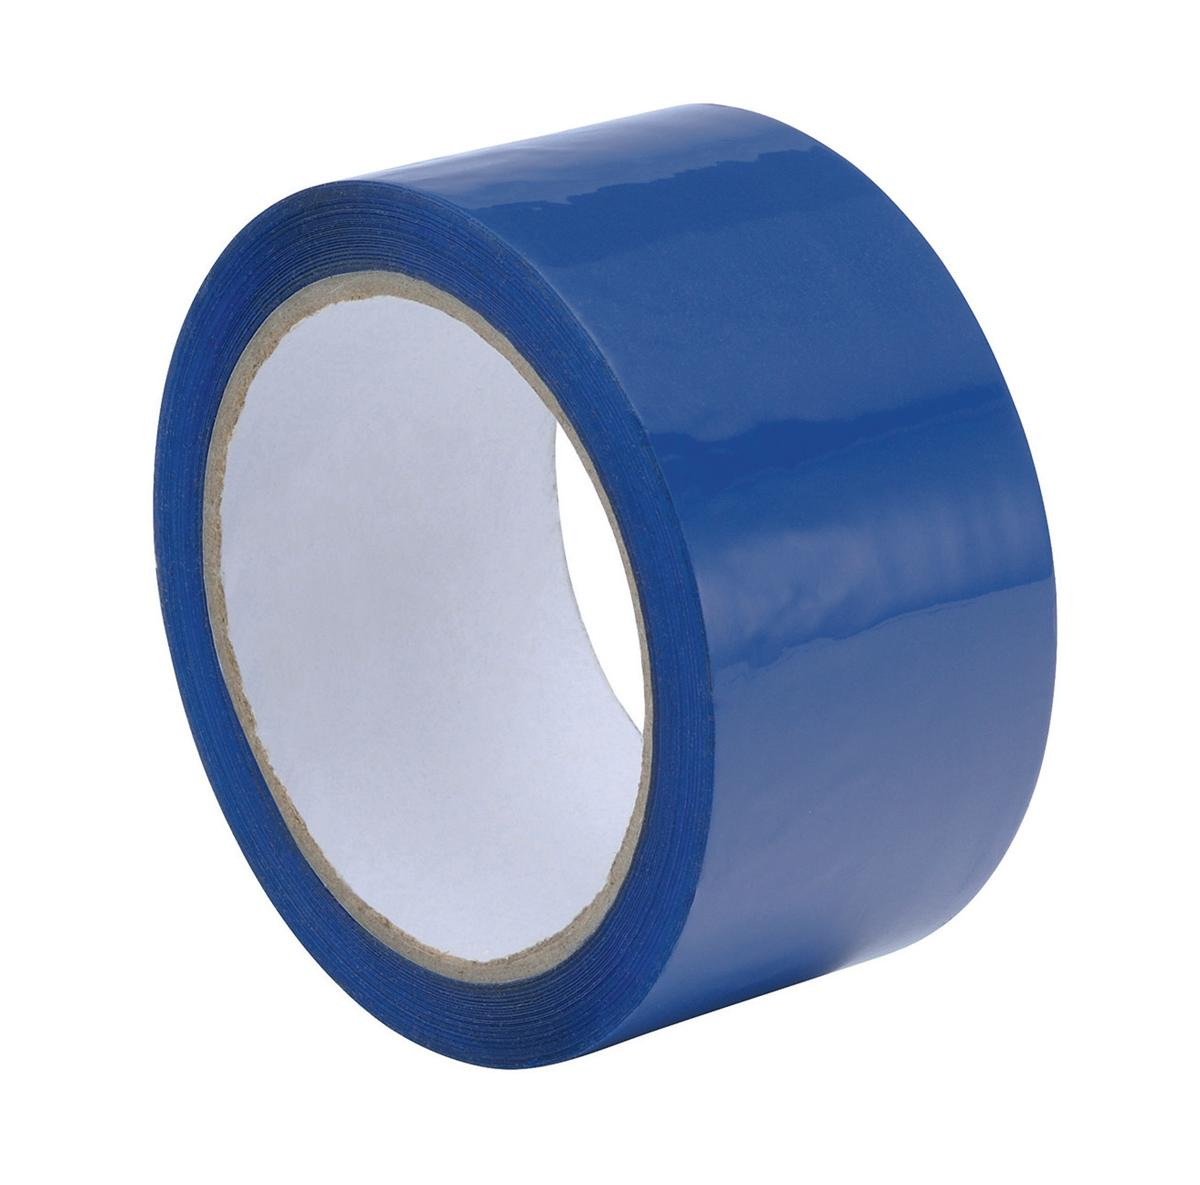 Image for Polypropylene Tape 50mmx66m Blue Ref BLCP50 [Pack 6]